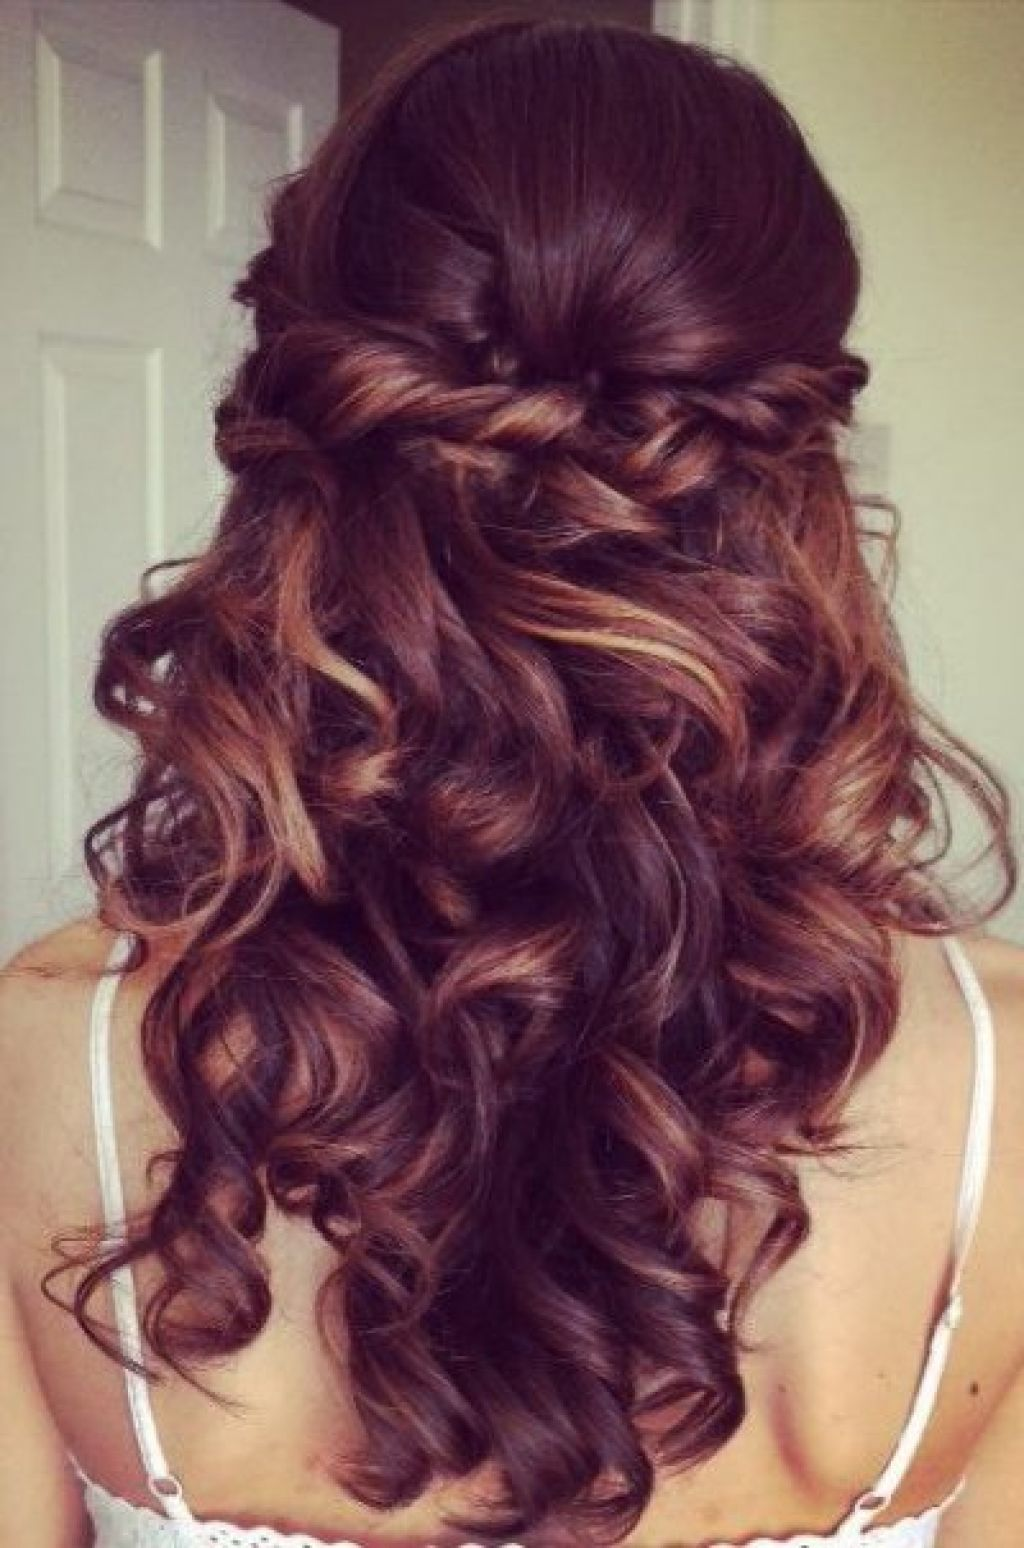 Elegant Curly Half Updo Prom Hairstyle With Bouncy Long Curls ...